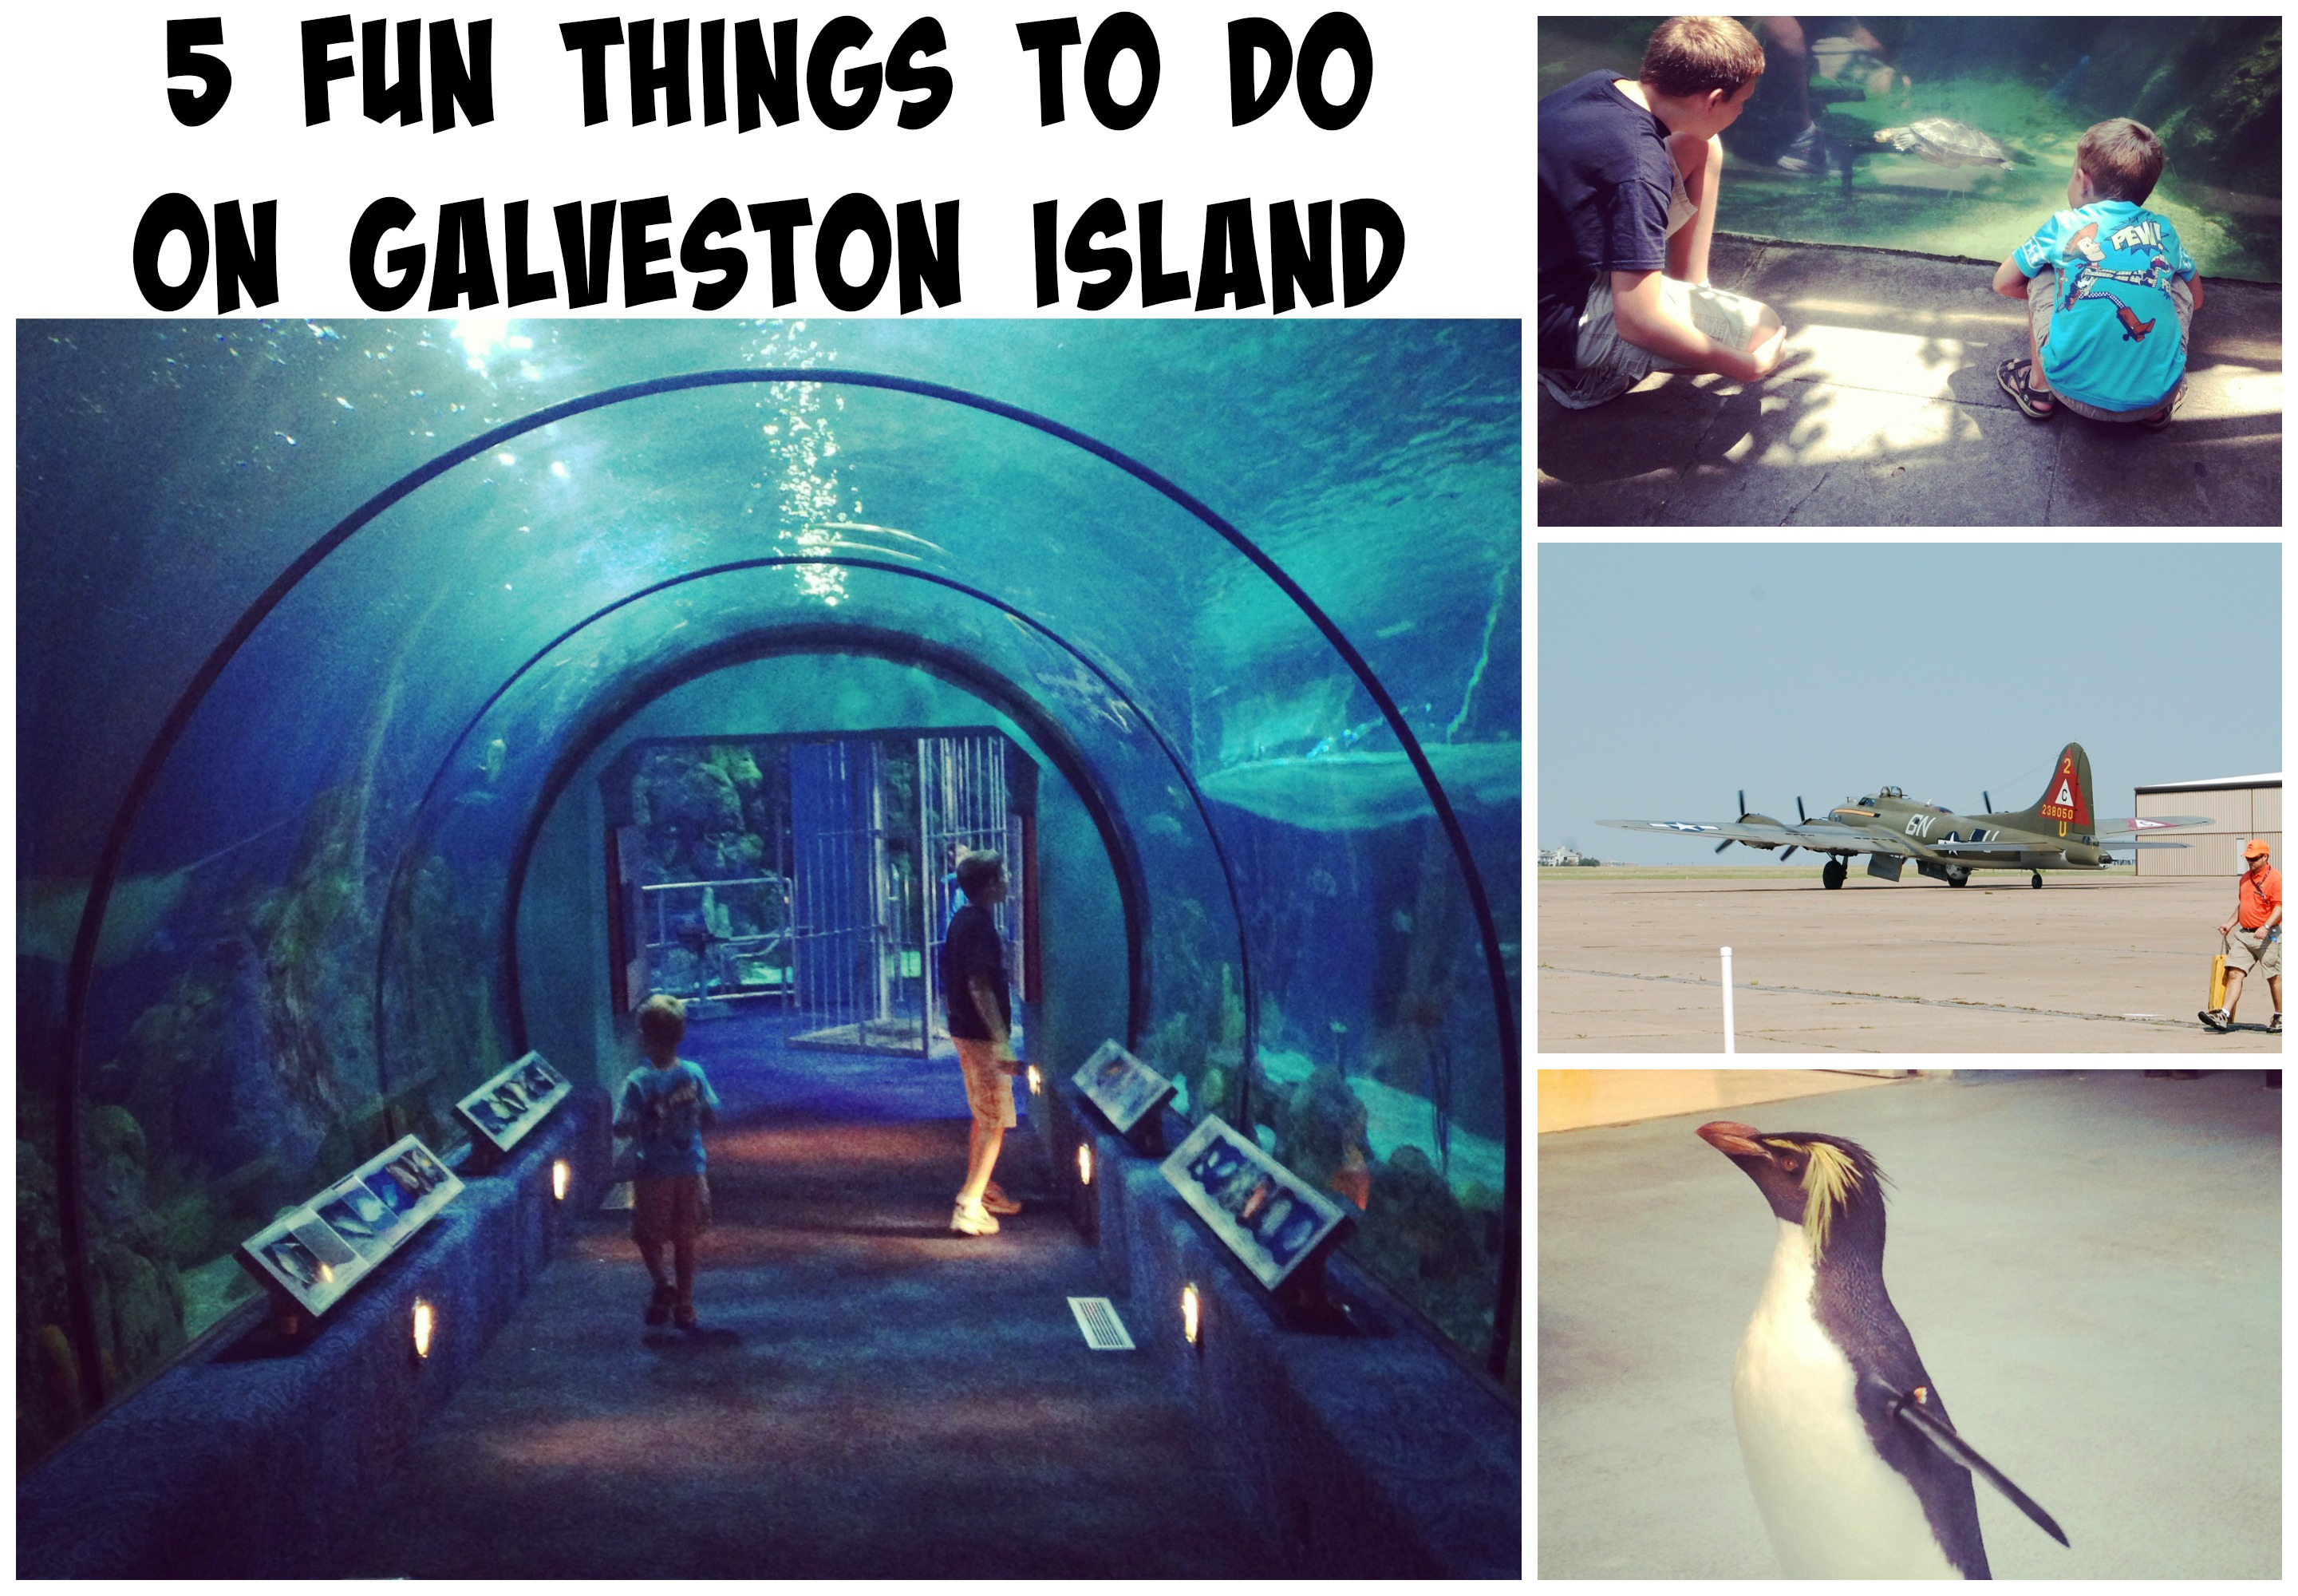 Fun Things To Do On Galveston Island